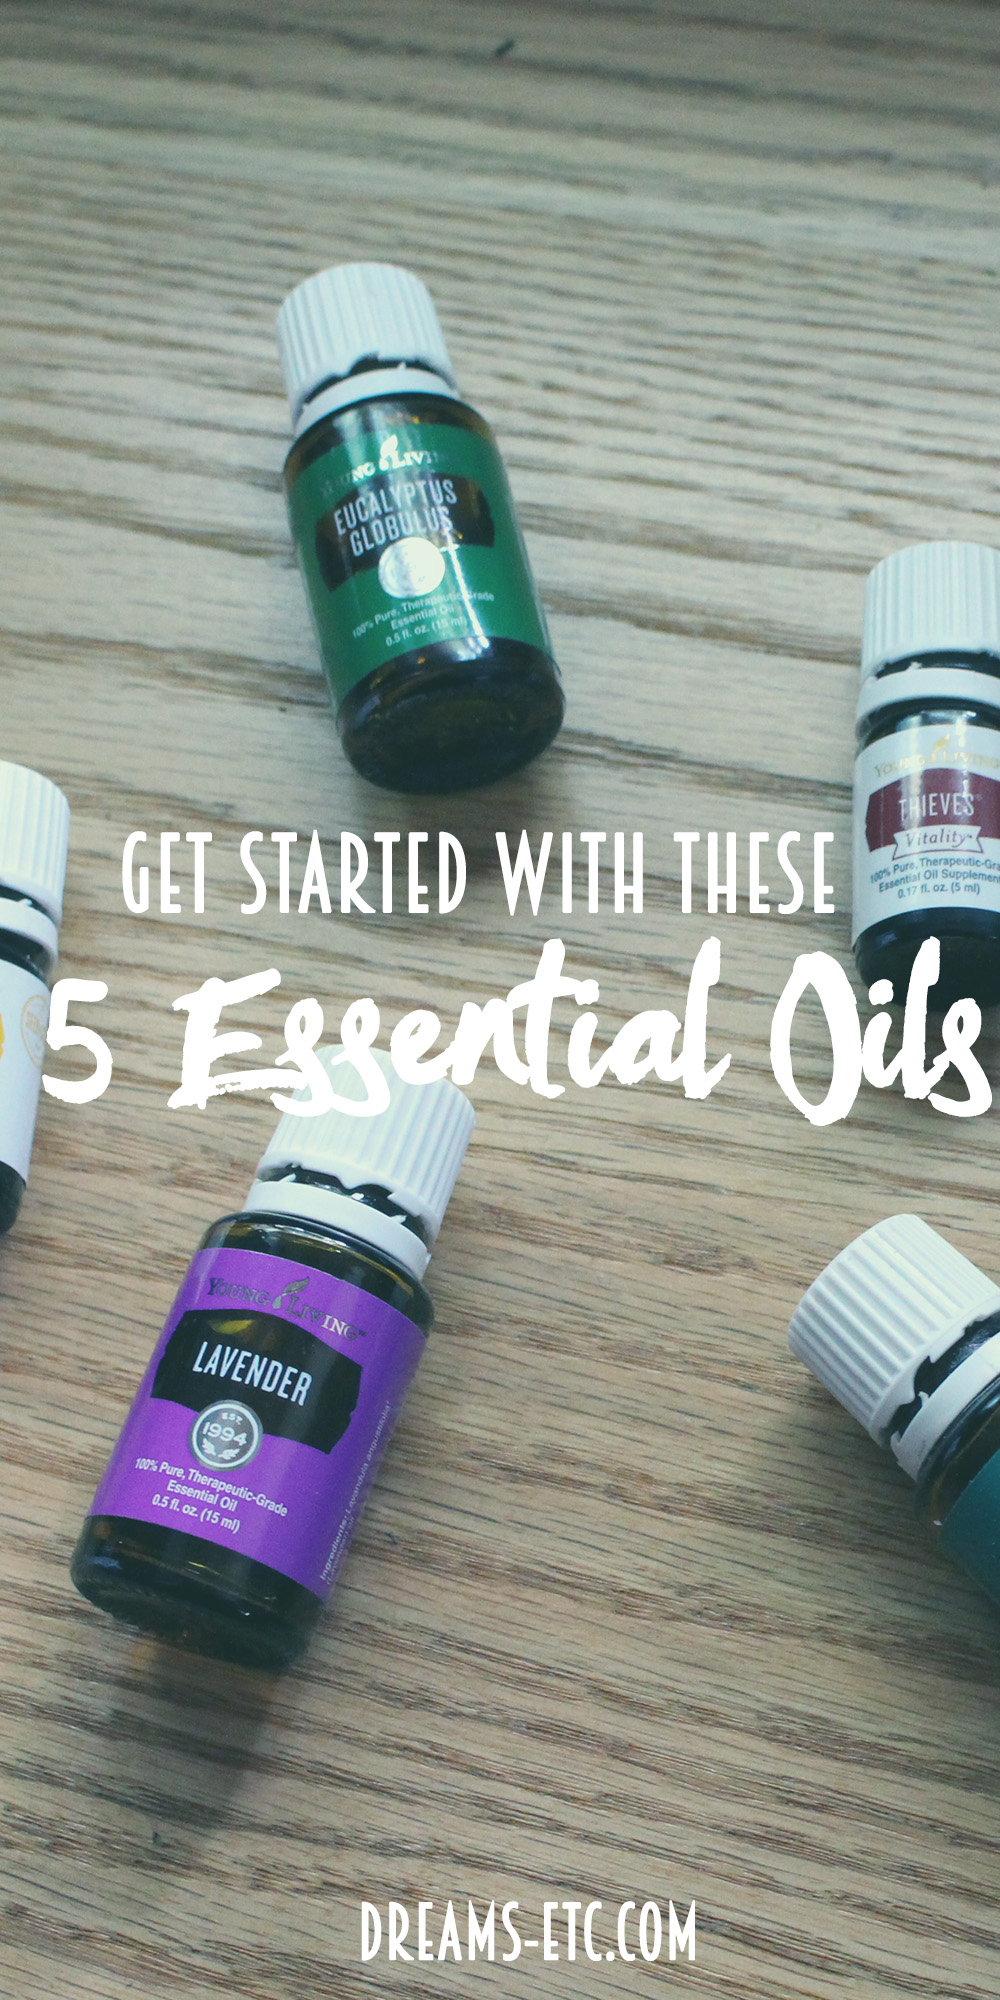 Get started with these 5 essential oils for beginners! // dreams-etc.com